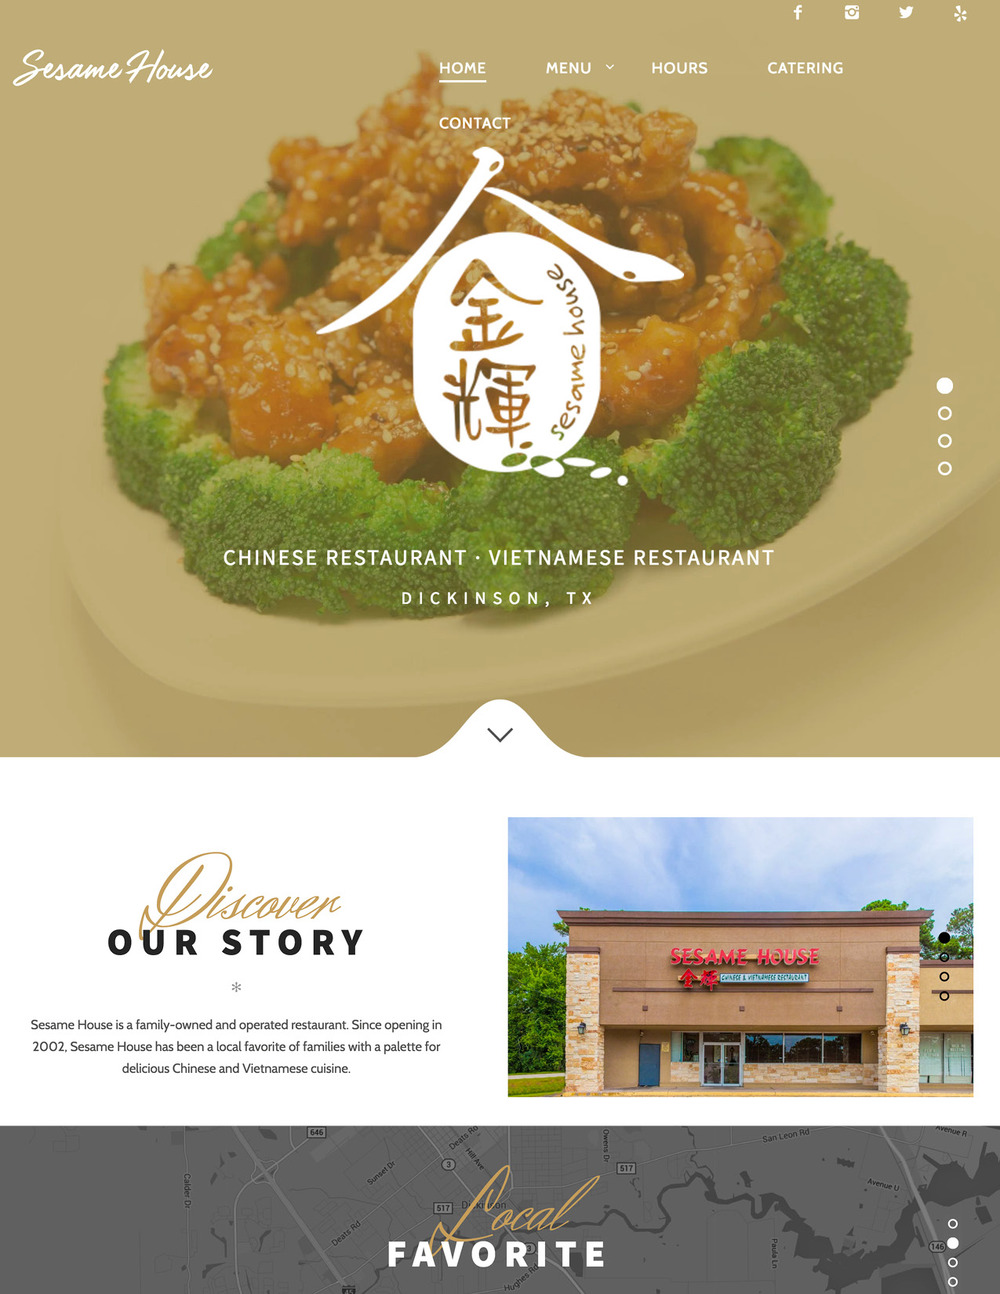 Sesame House Dickinson - Website design and Photography